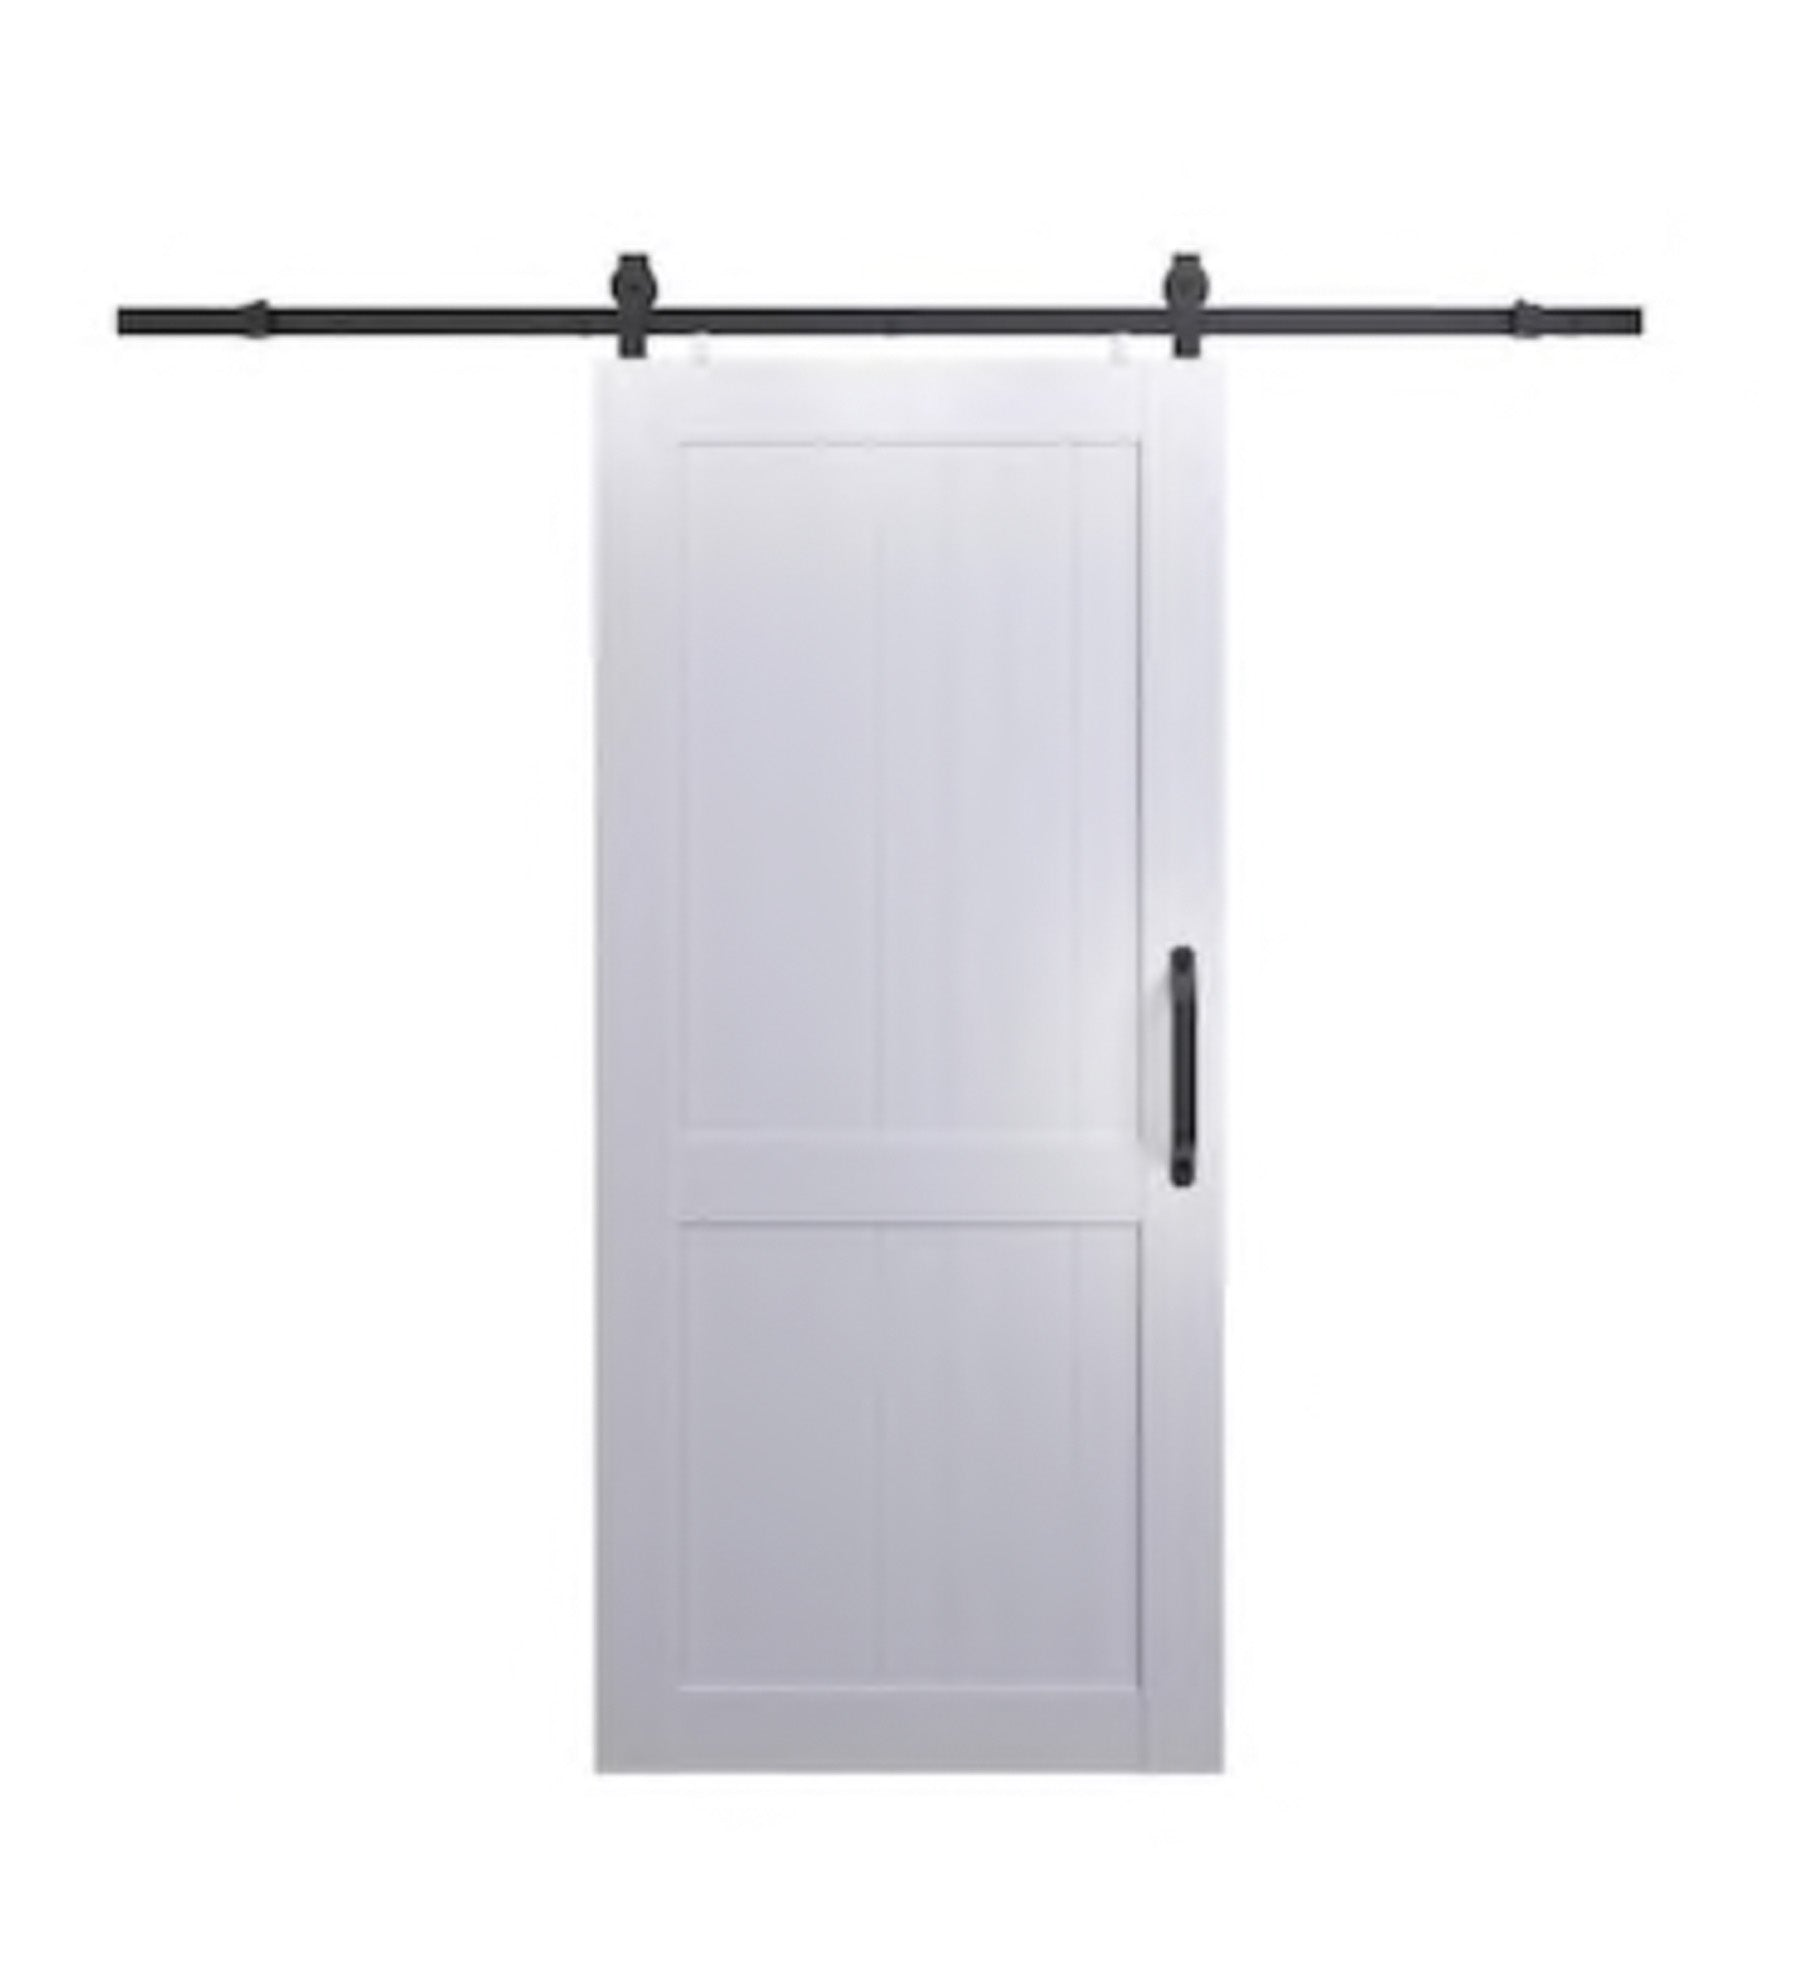 INSTALLED Pinecroft Millbrook White Pre-finished 2-Panel Pvc Barn Door Hardware Included